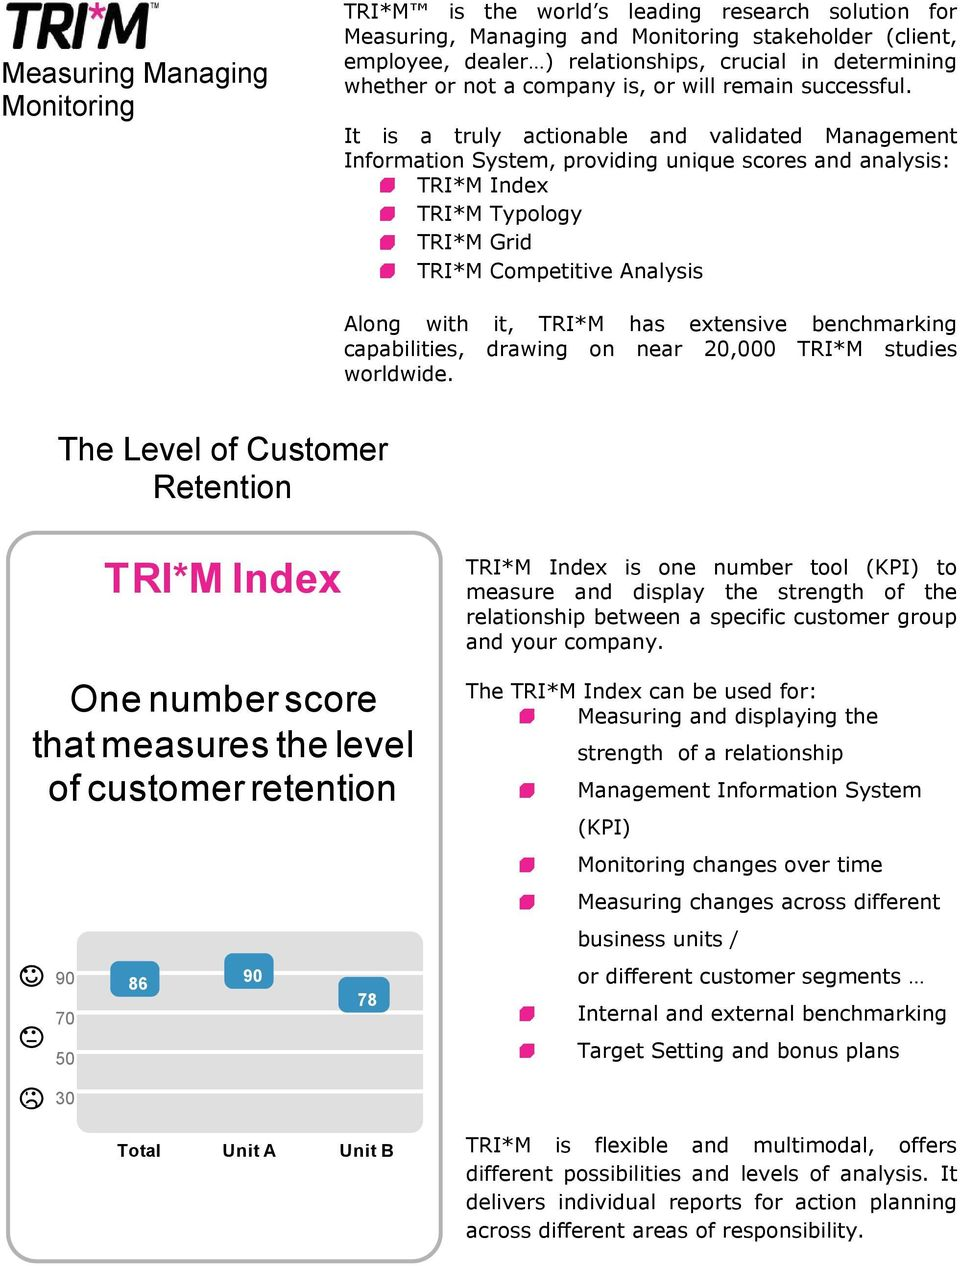 It is a truly actionable and validated Management Information System, providing unique scores and analysis: TRI*M Index TRI*M Typology TRI*M Grid TRI*M Competitive Analysis Along with it, TRI*M has